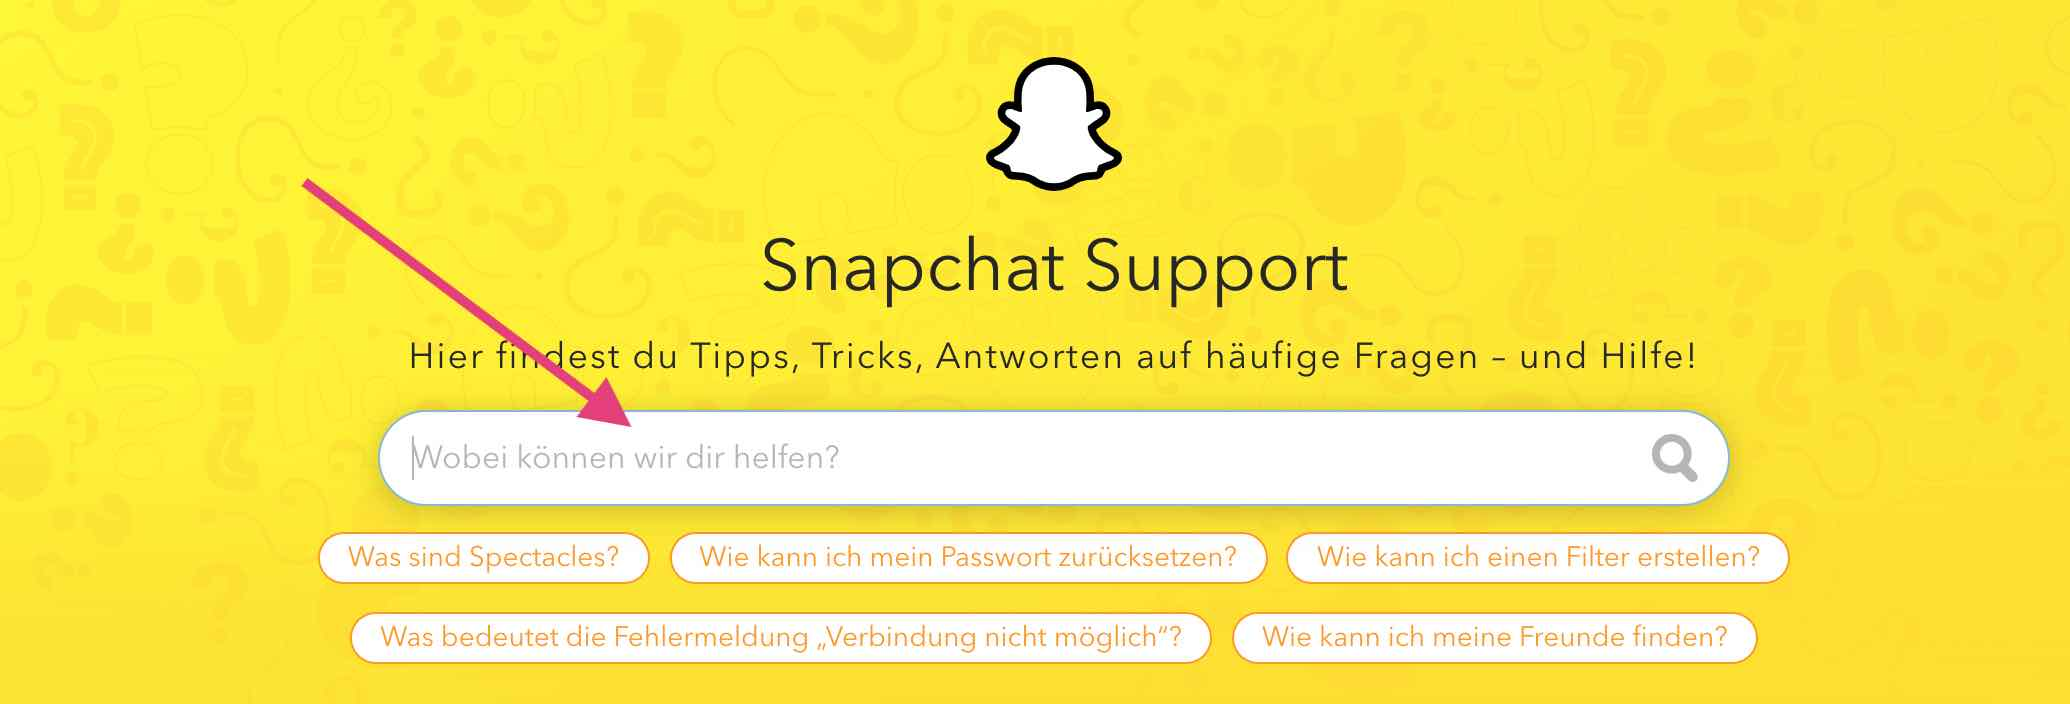 Snapchat Support Seite